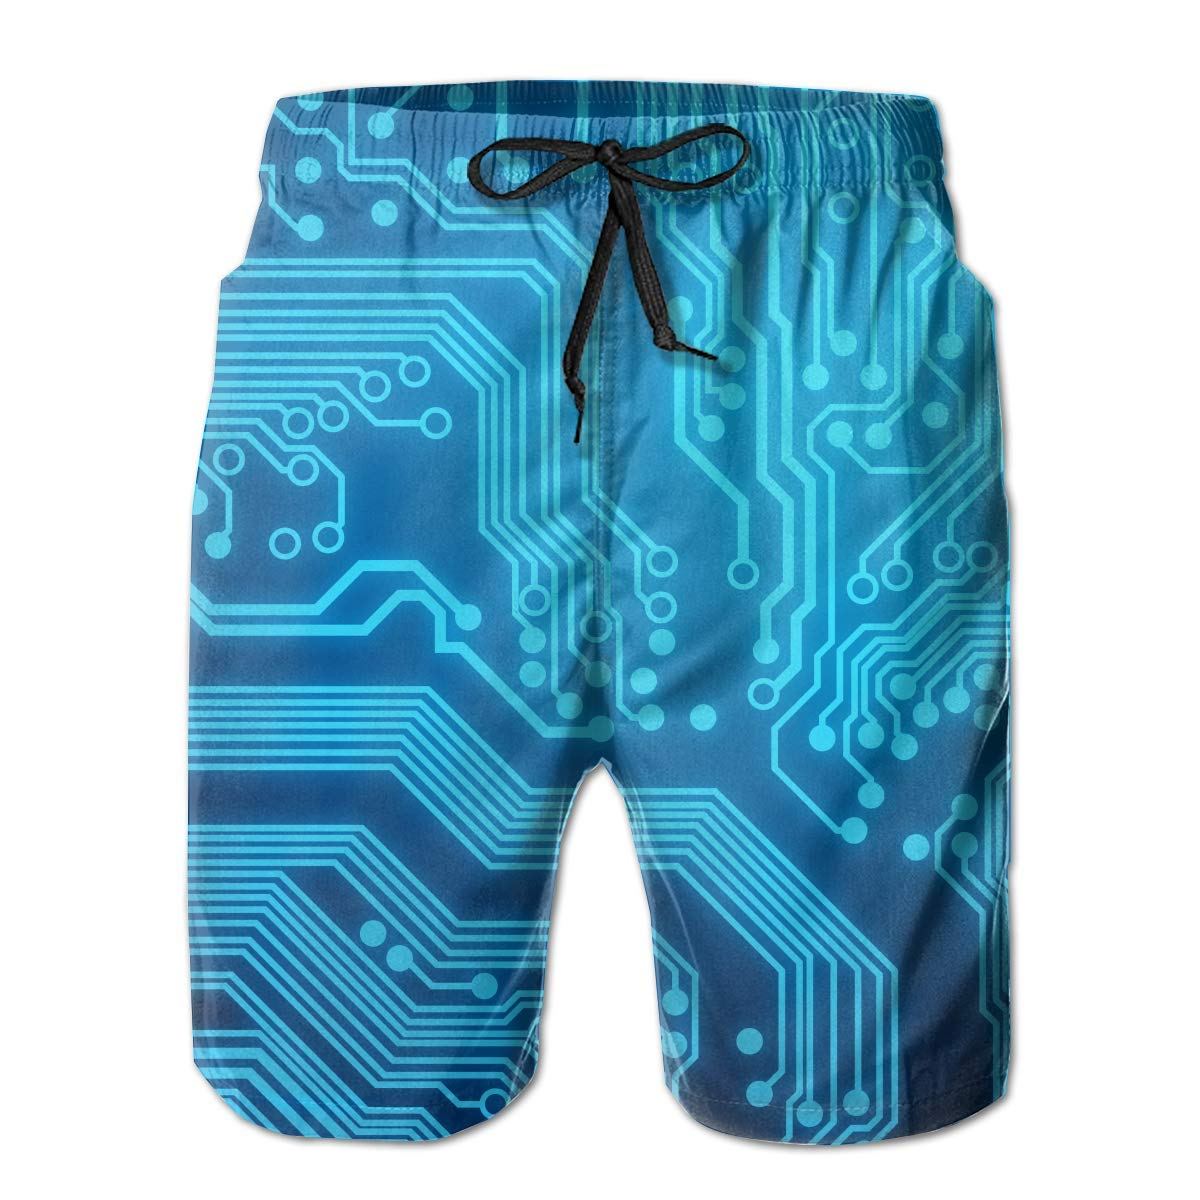 Circuit Board Quick Dry Elastic Lace Boardshorts Beach Shorts Pants Swim Trunks Unique Man Swimsuit with Pockets